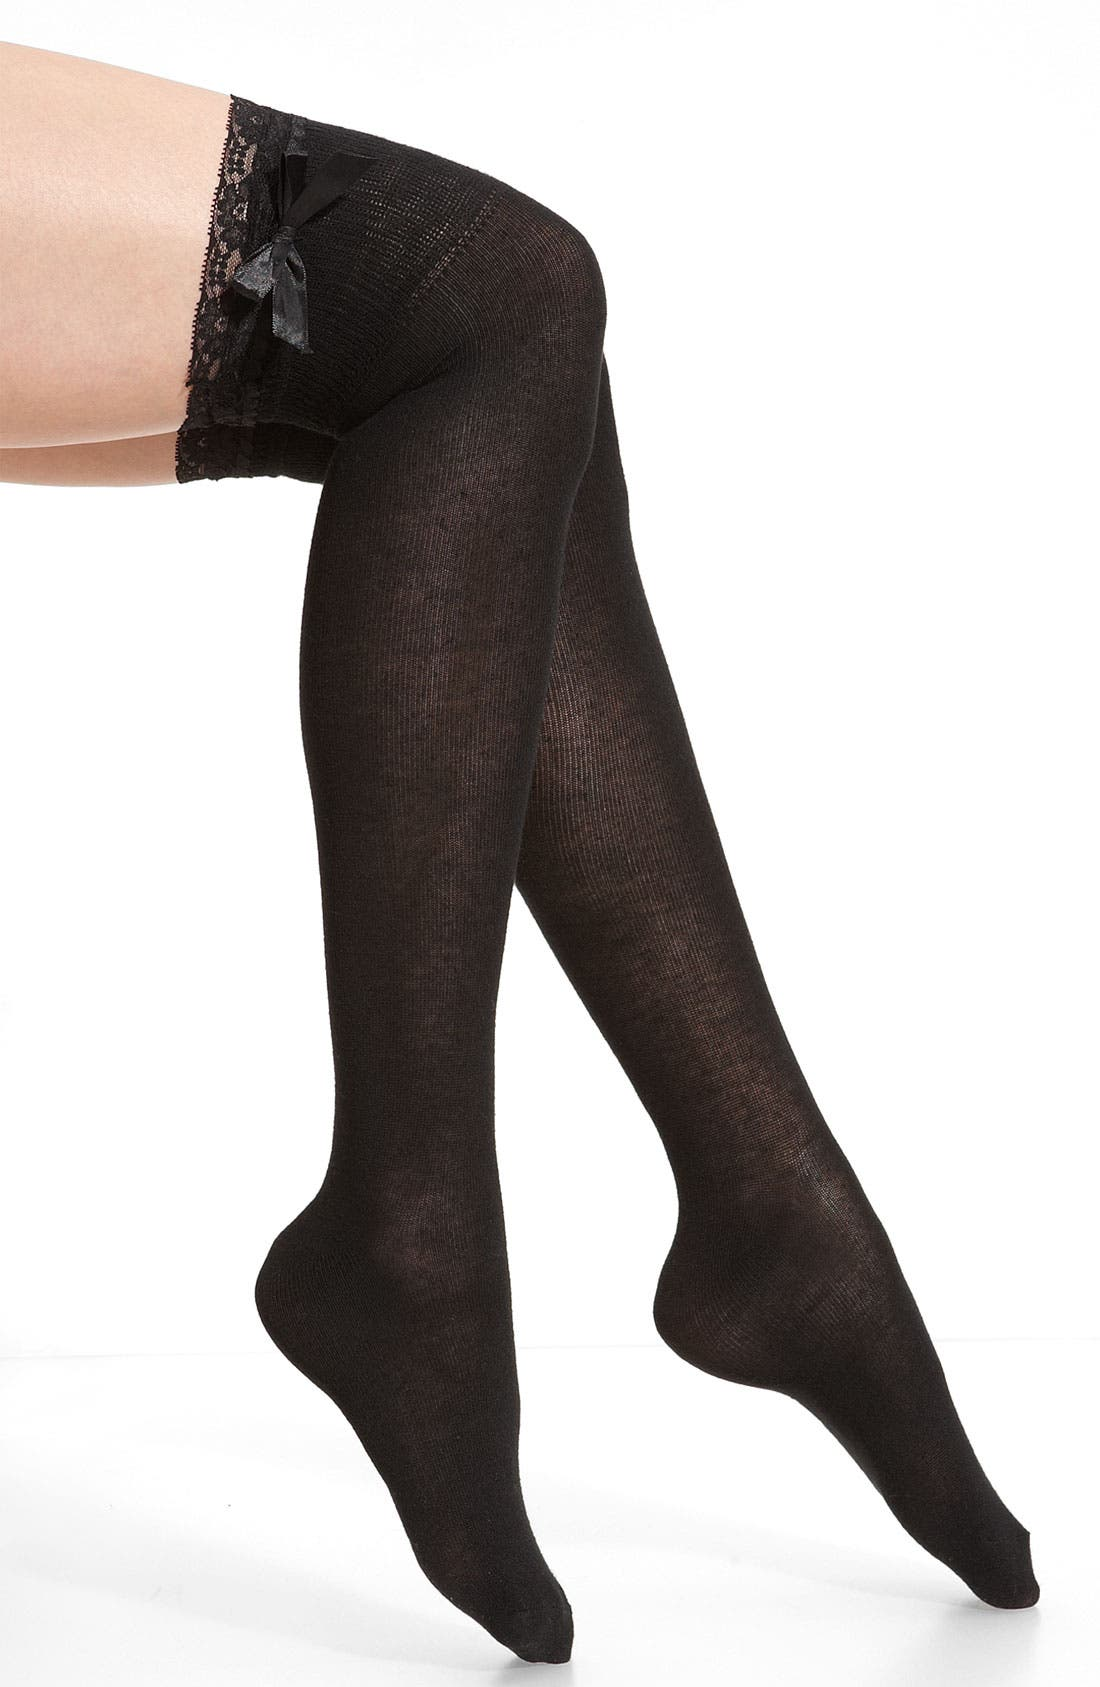 Alternate Image 1 Selected - Nordstrom 'Ribbon Lace' Over the Knee Socks